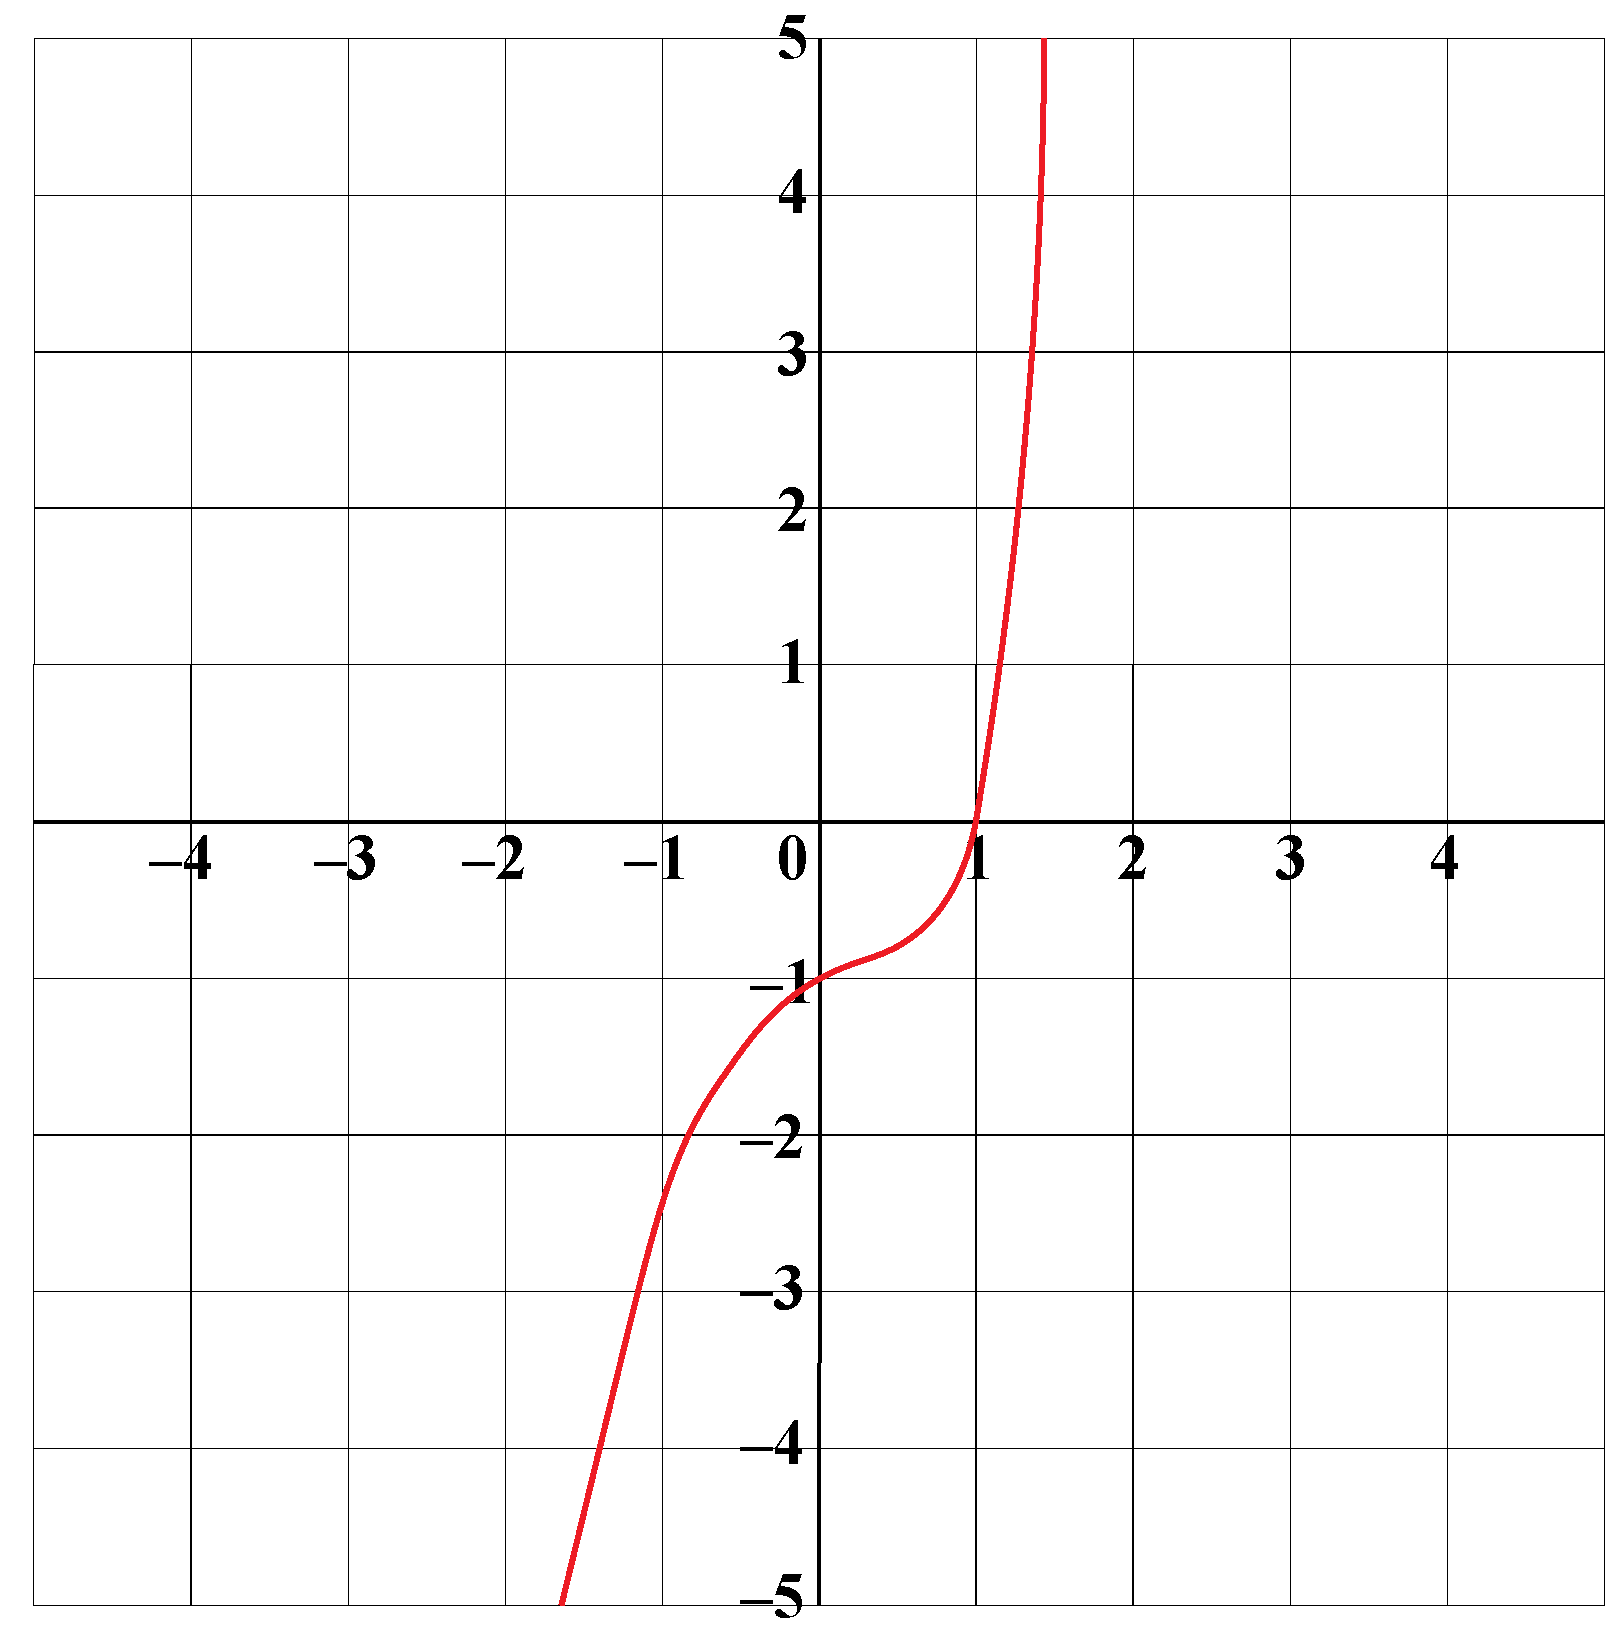 Graph of the given function